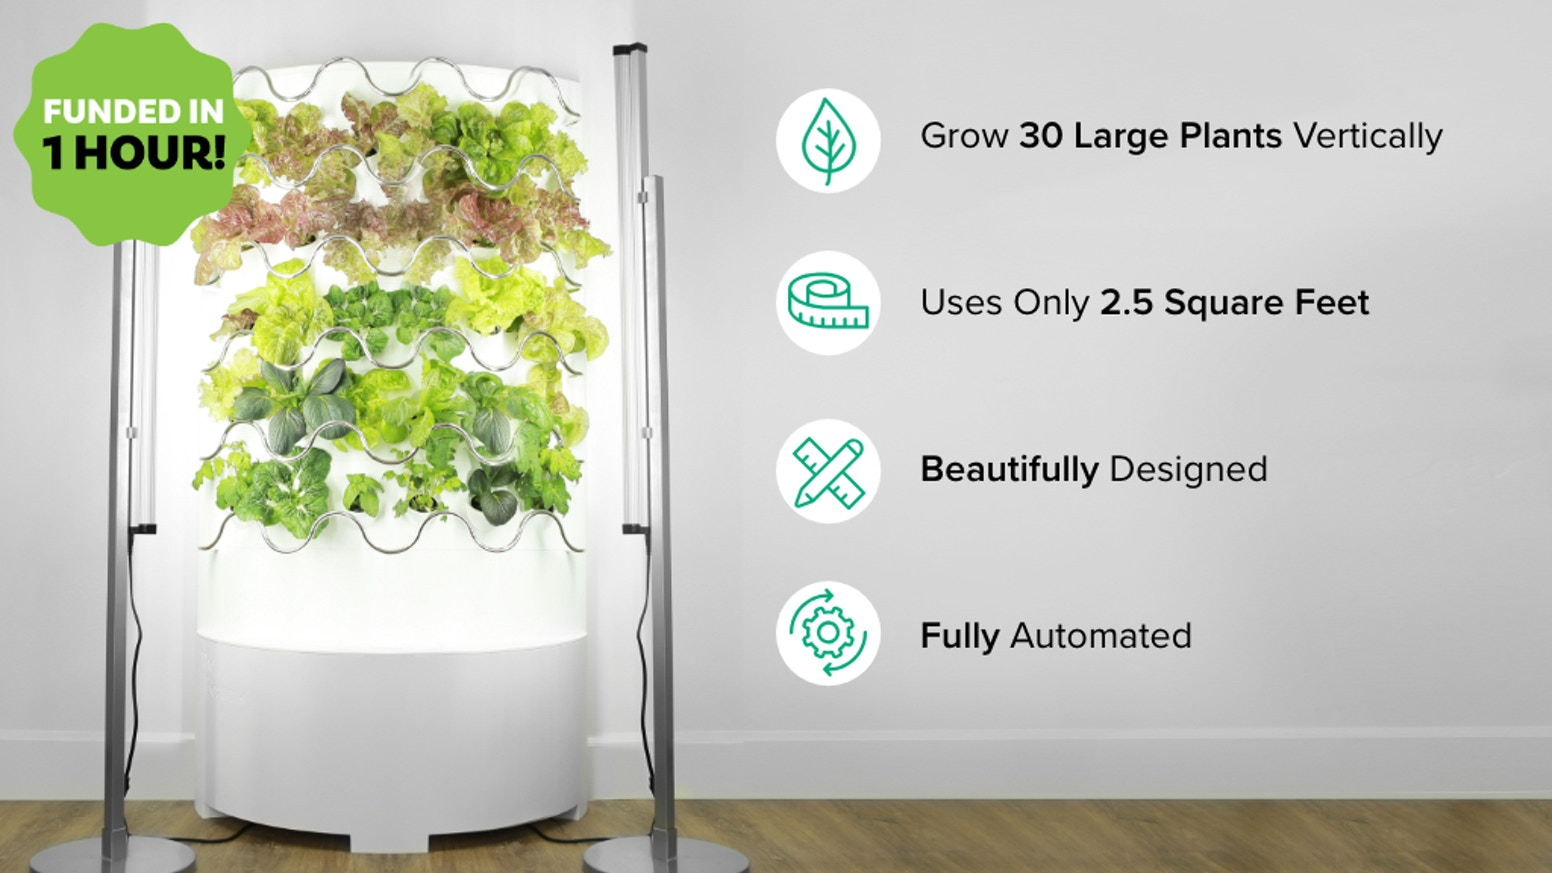 Grow 30 healthy plants 30-50% faster & bigger in a beautiful, space conscious vertical indoor garden. No chemicals or GMOs needed.